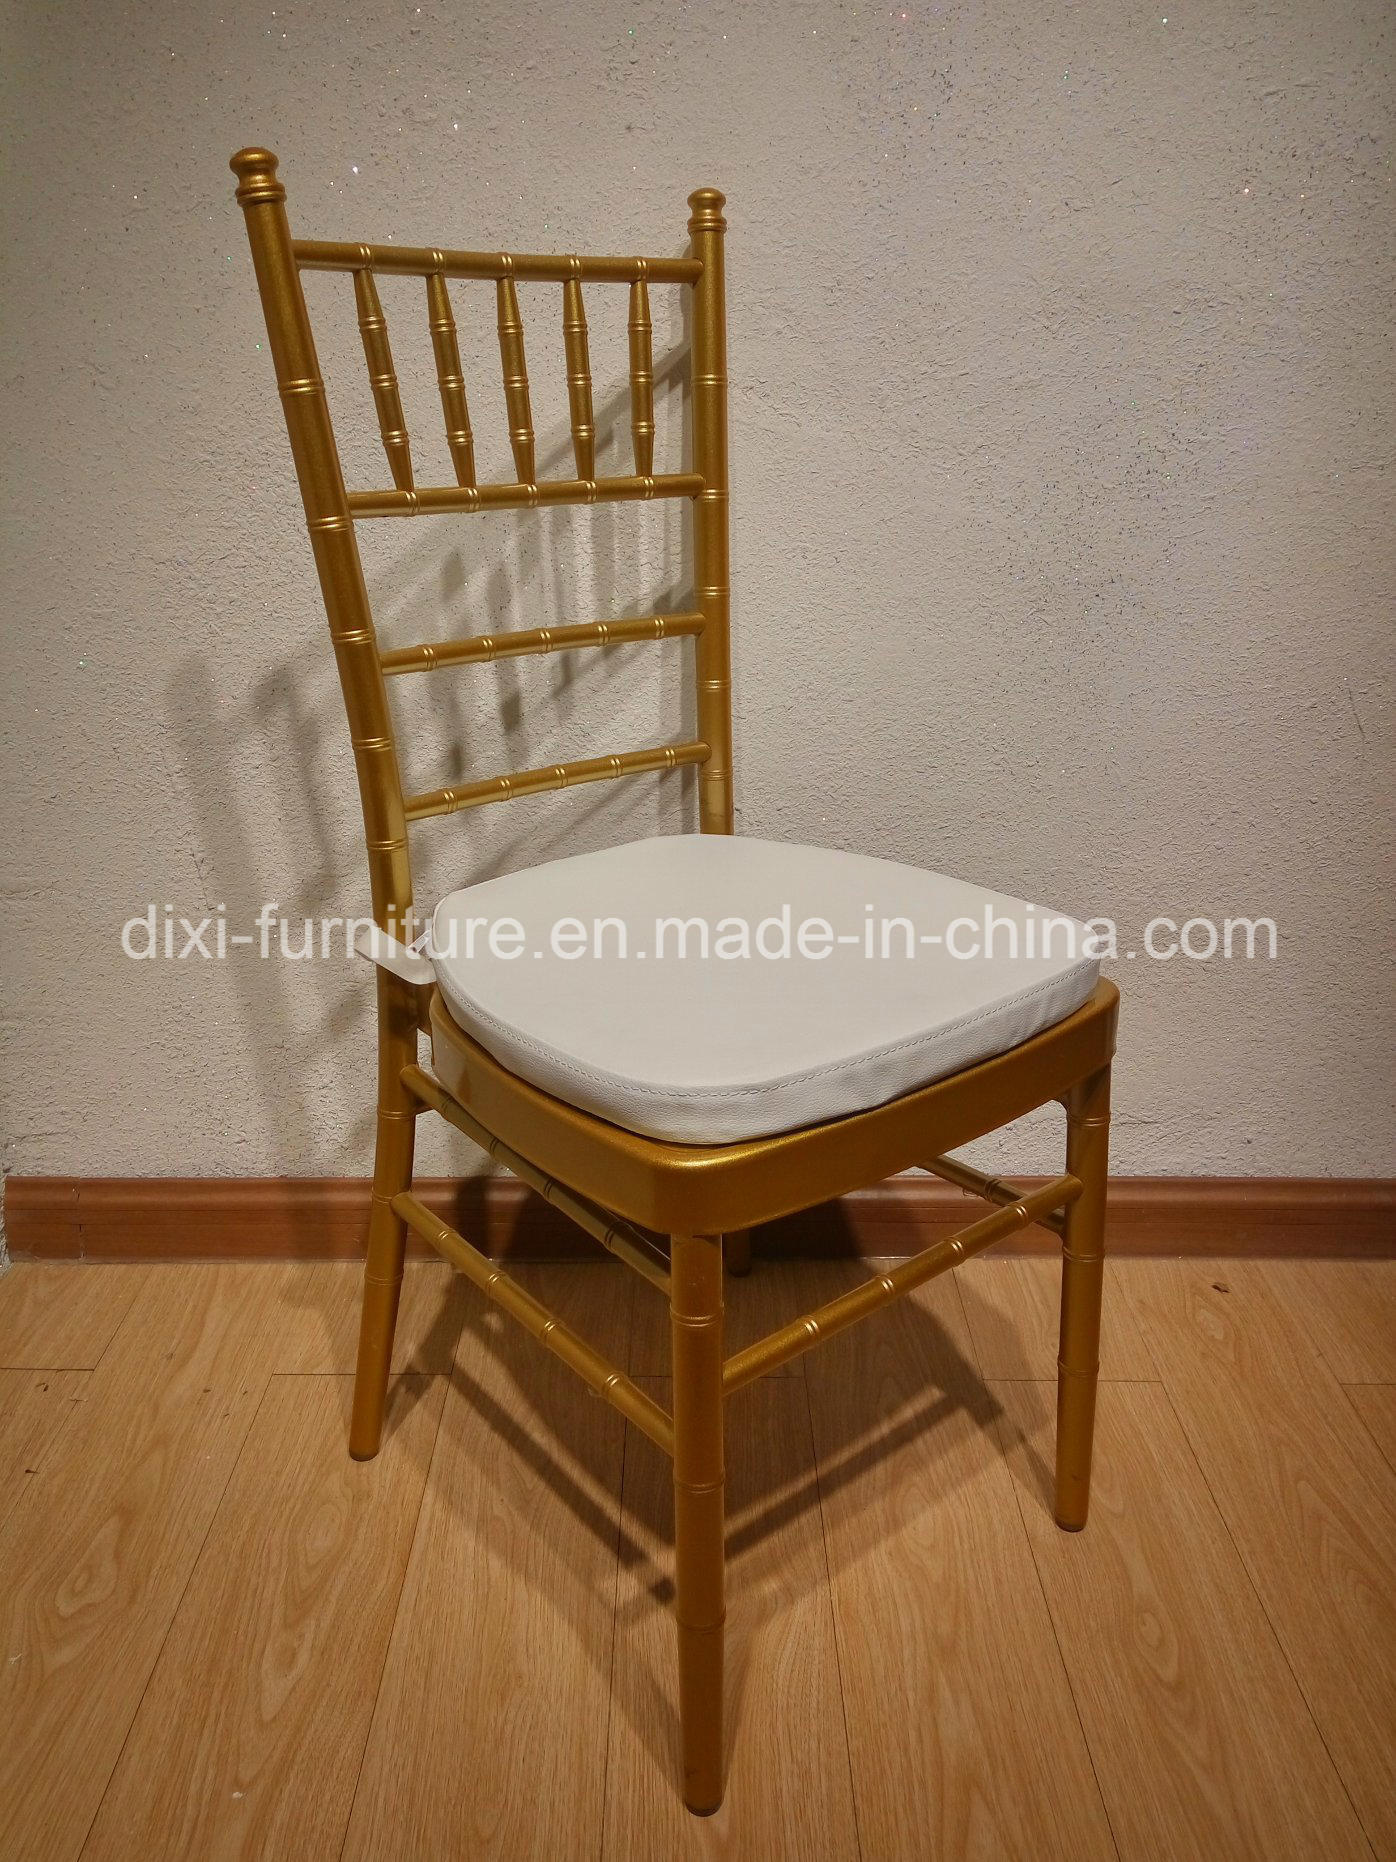 High Quality Metal Chair for Wedding